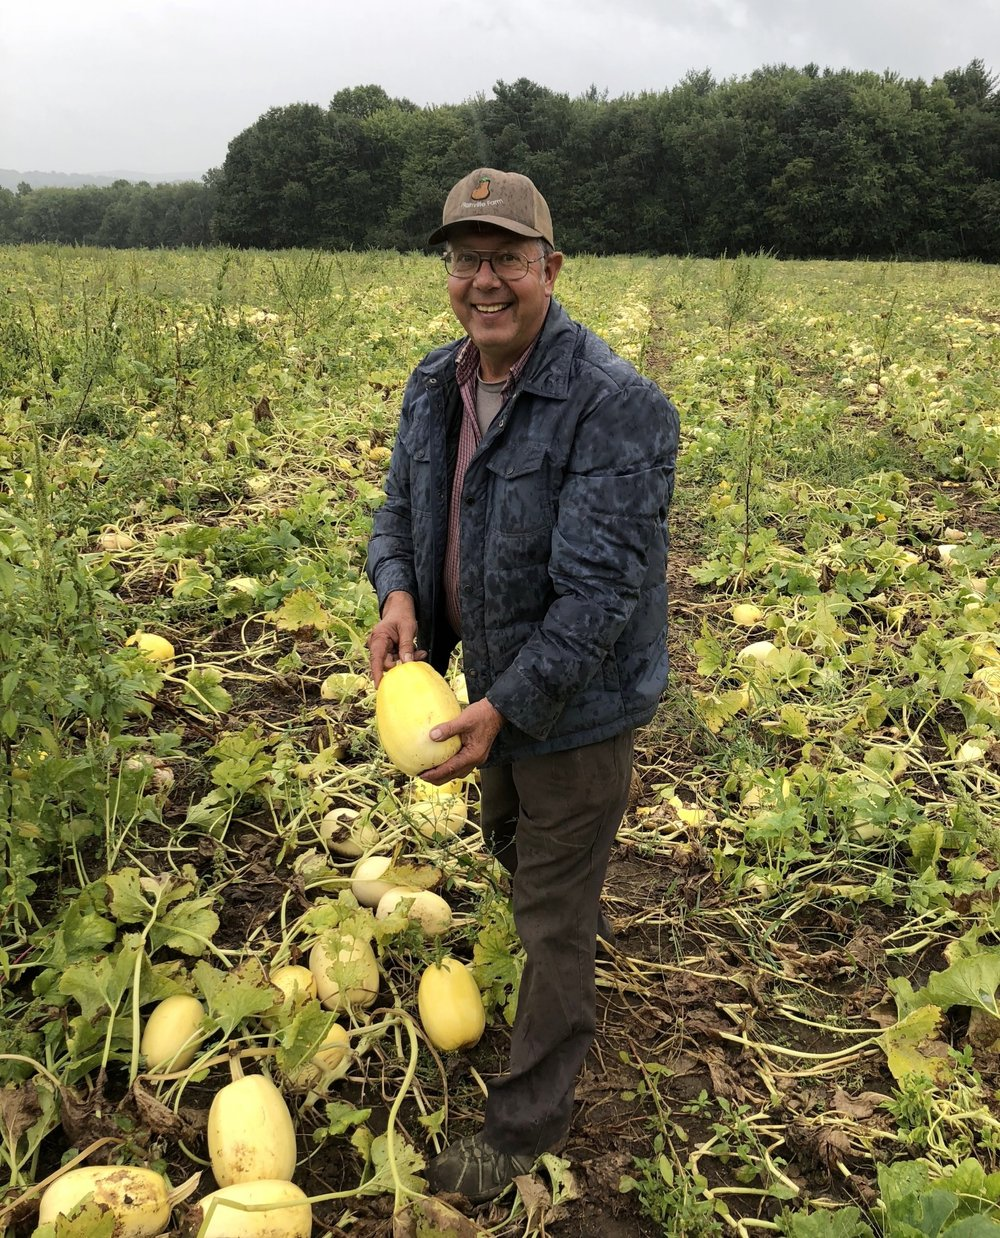 Wally Czajkowski in his field of (delicious!) spaghetti squash.